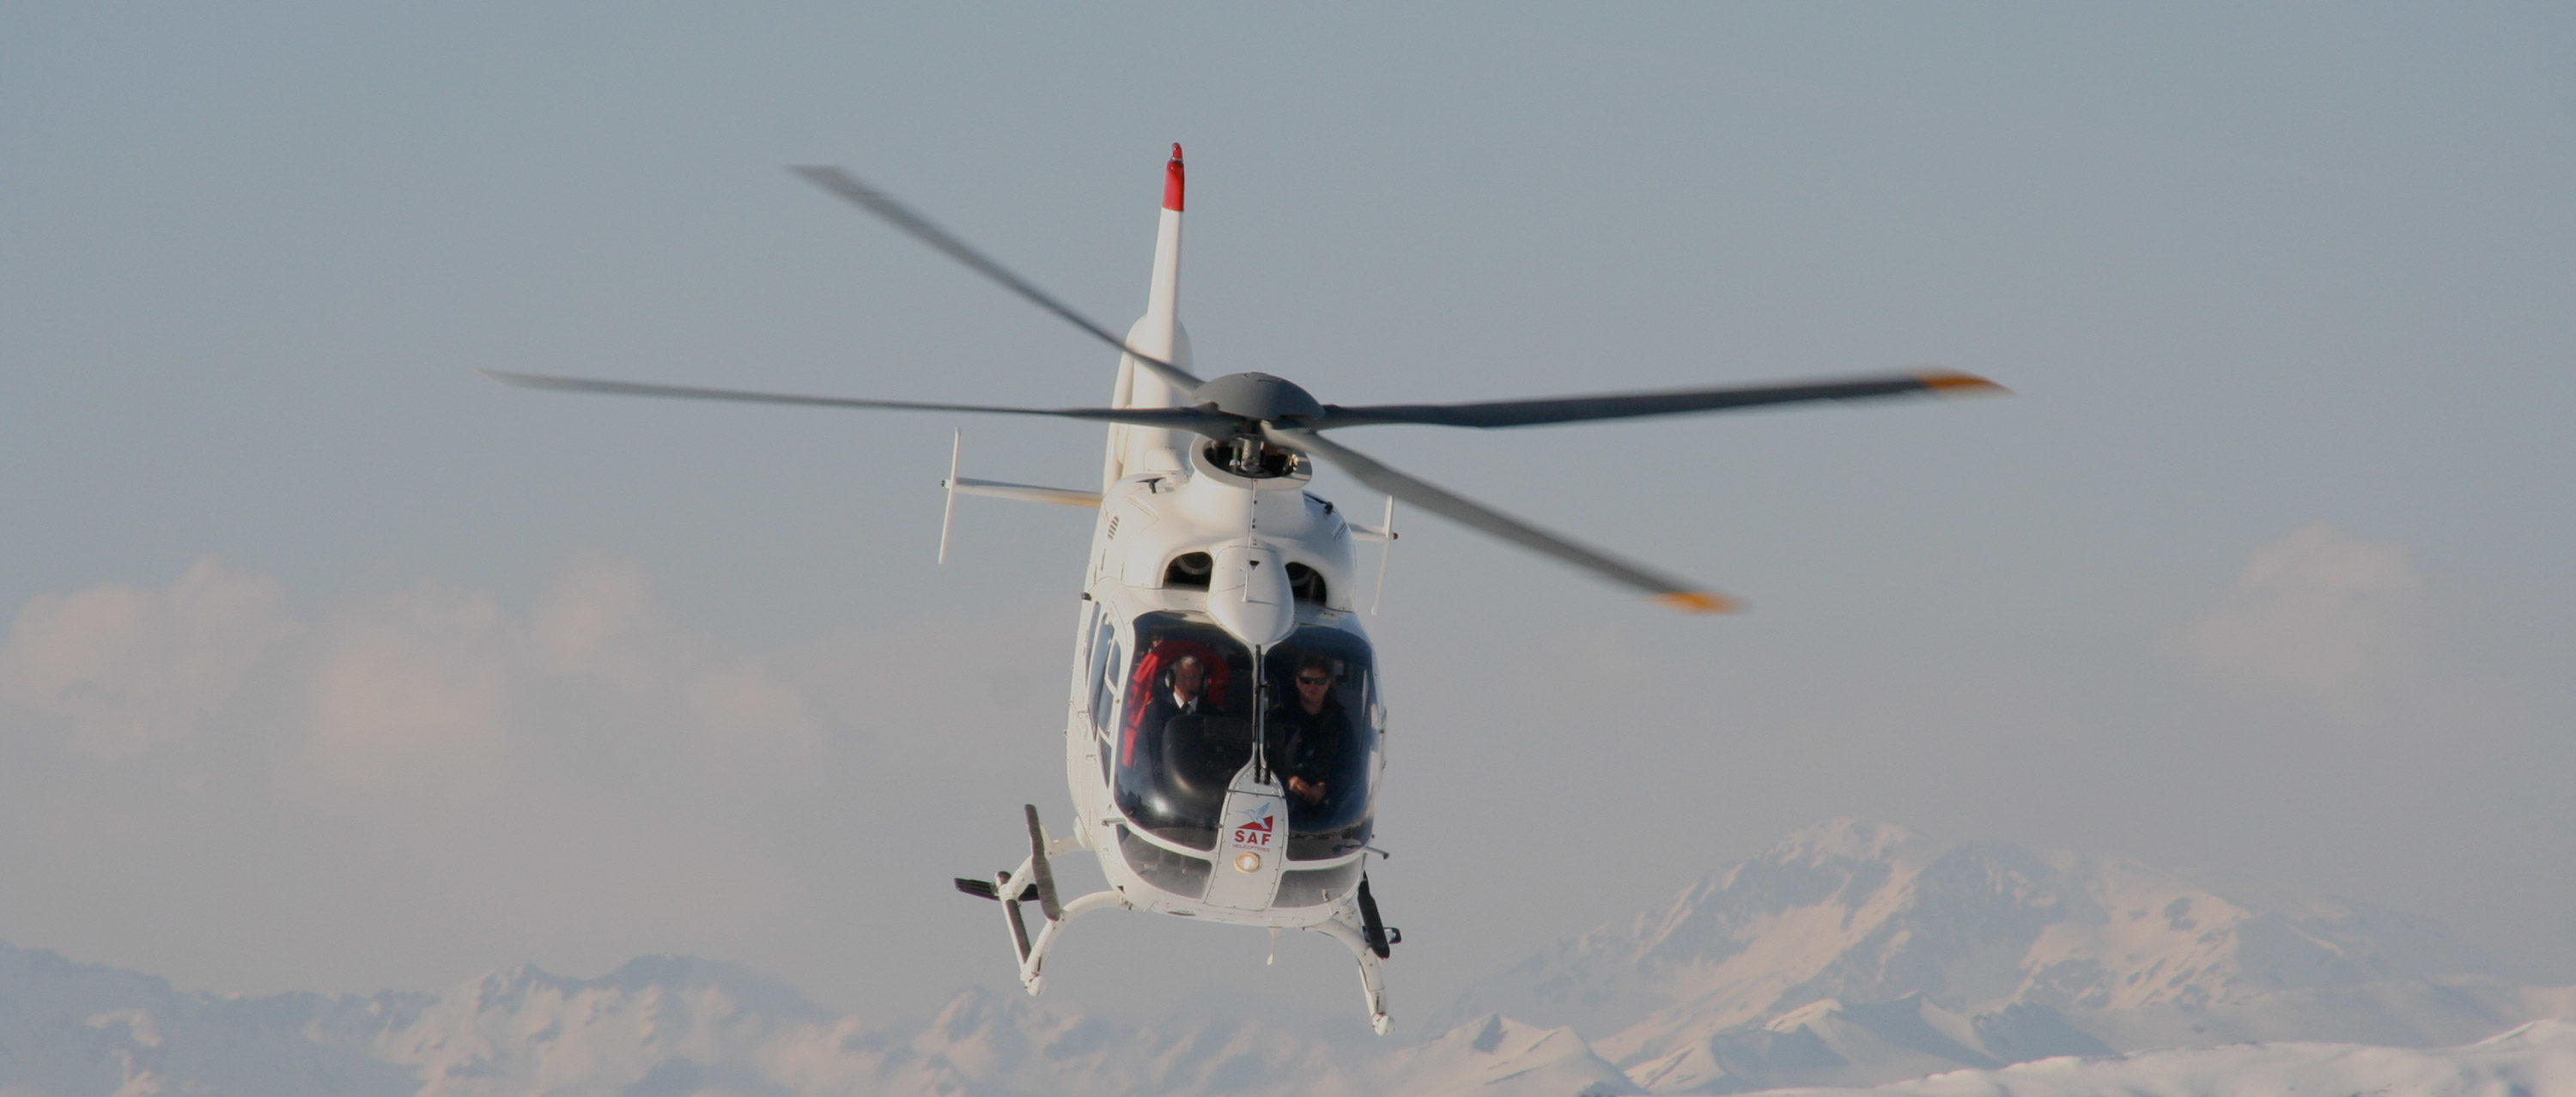 Heli-Skiing in Spain. Helicopter over mountains